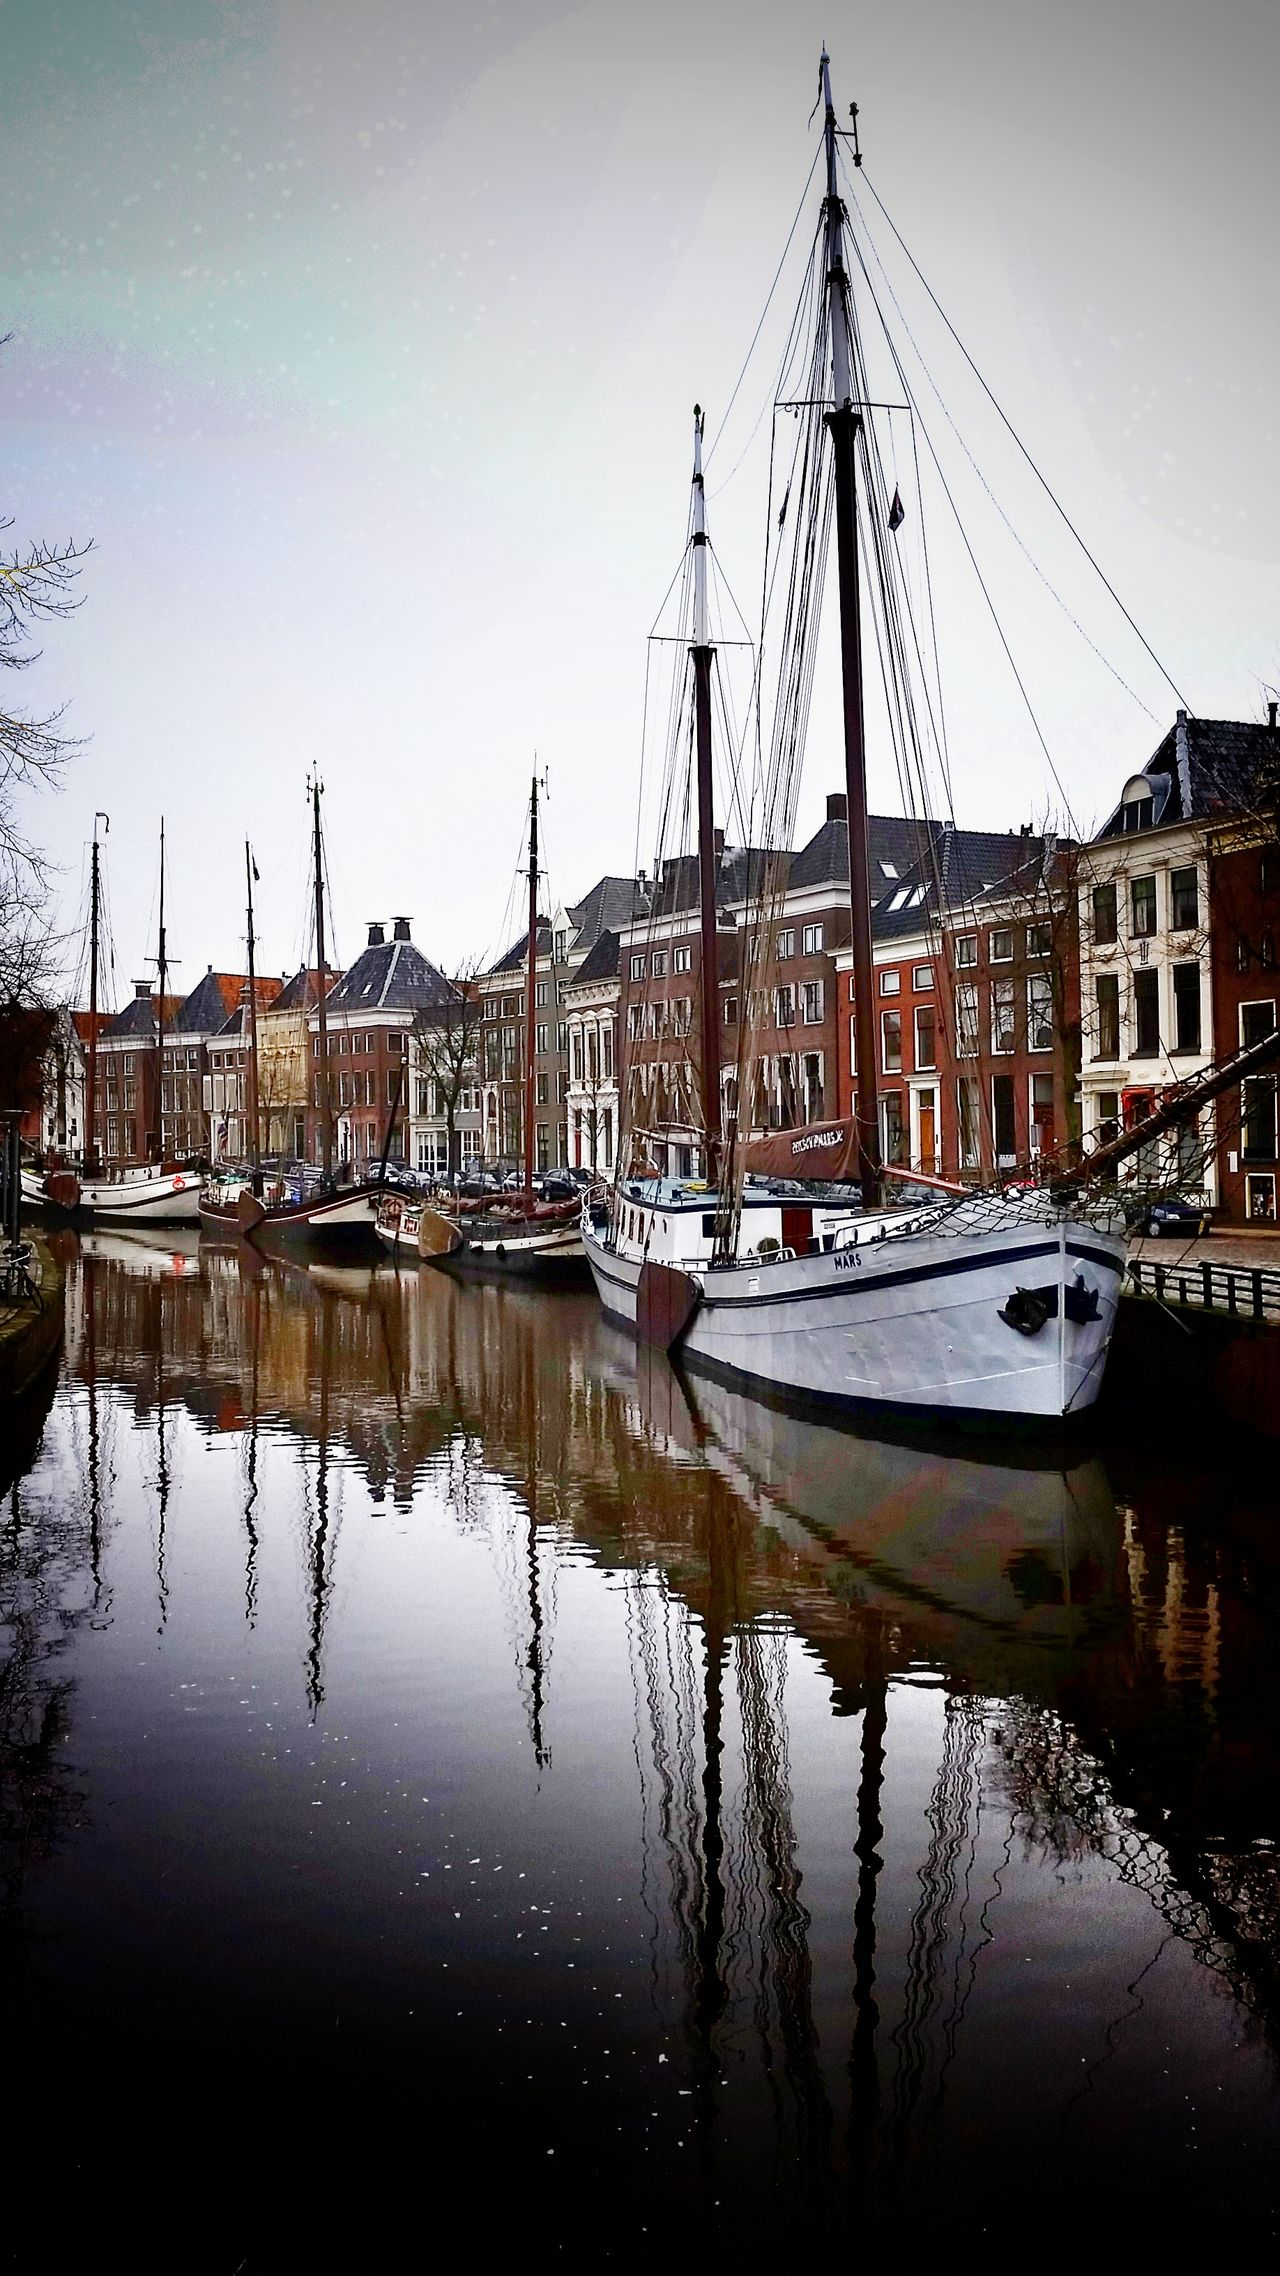 Groningen Holland Groningen Canal Boats Scenery Riverbank River Water Mast Sailboat Sailing Ship Yacht Tall Ship Holland Reflection Nautical Vessel Harbor Moored No People Sky Tree Outdoors Large Group Of Objects Day Nature